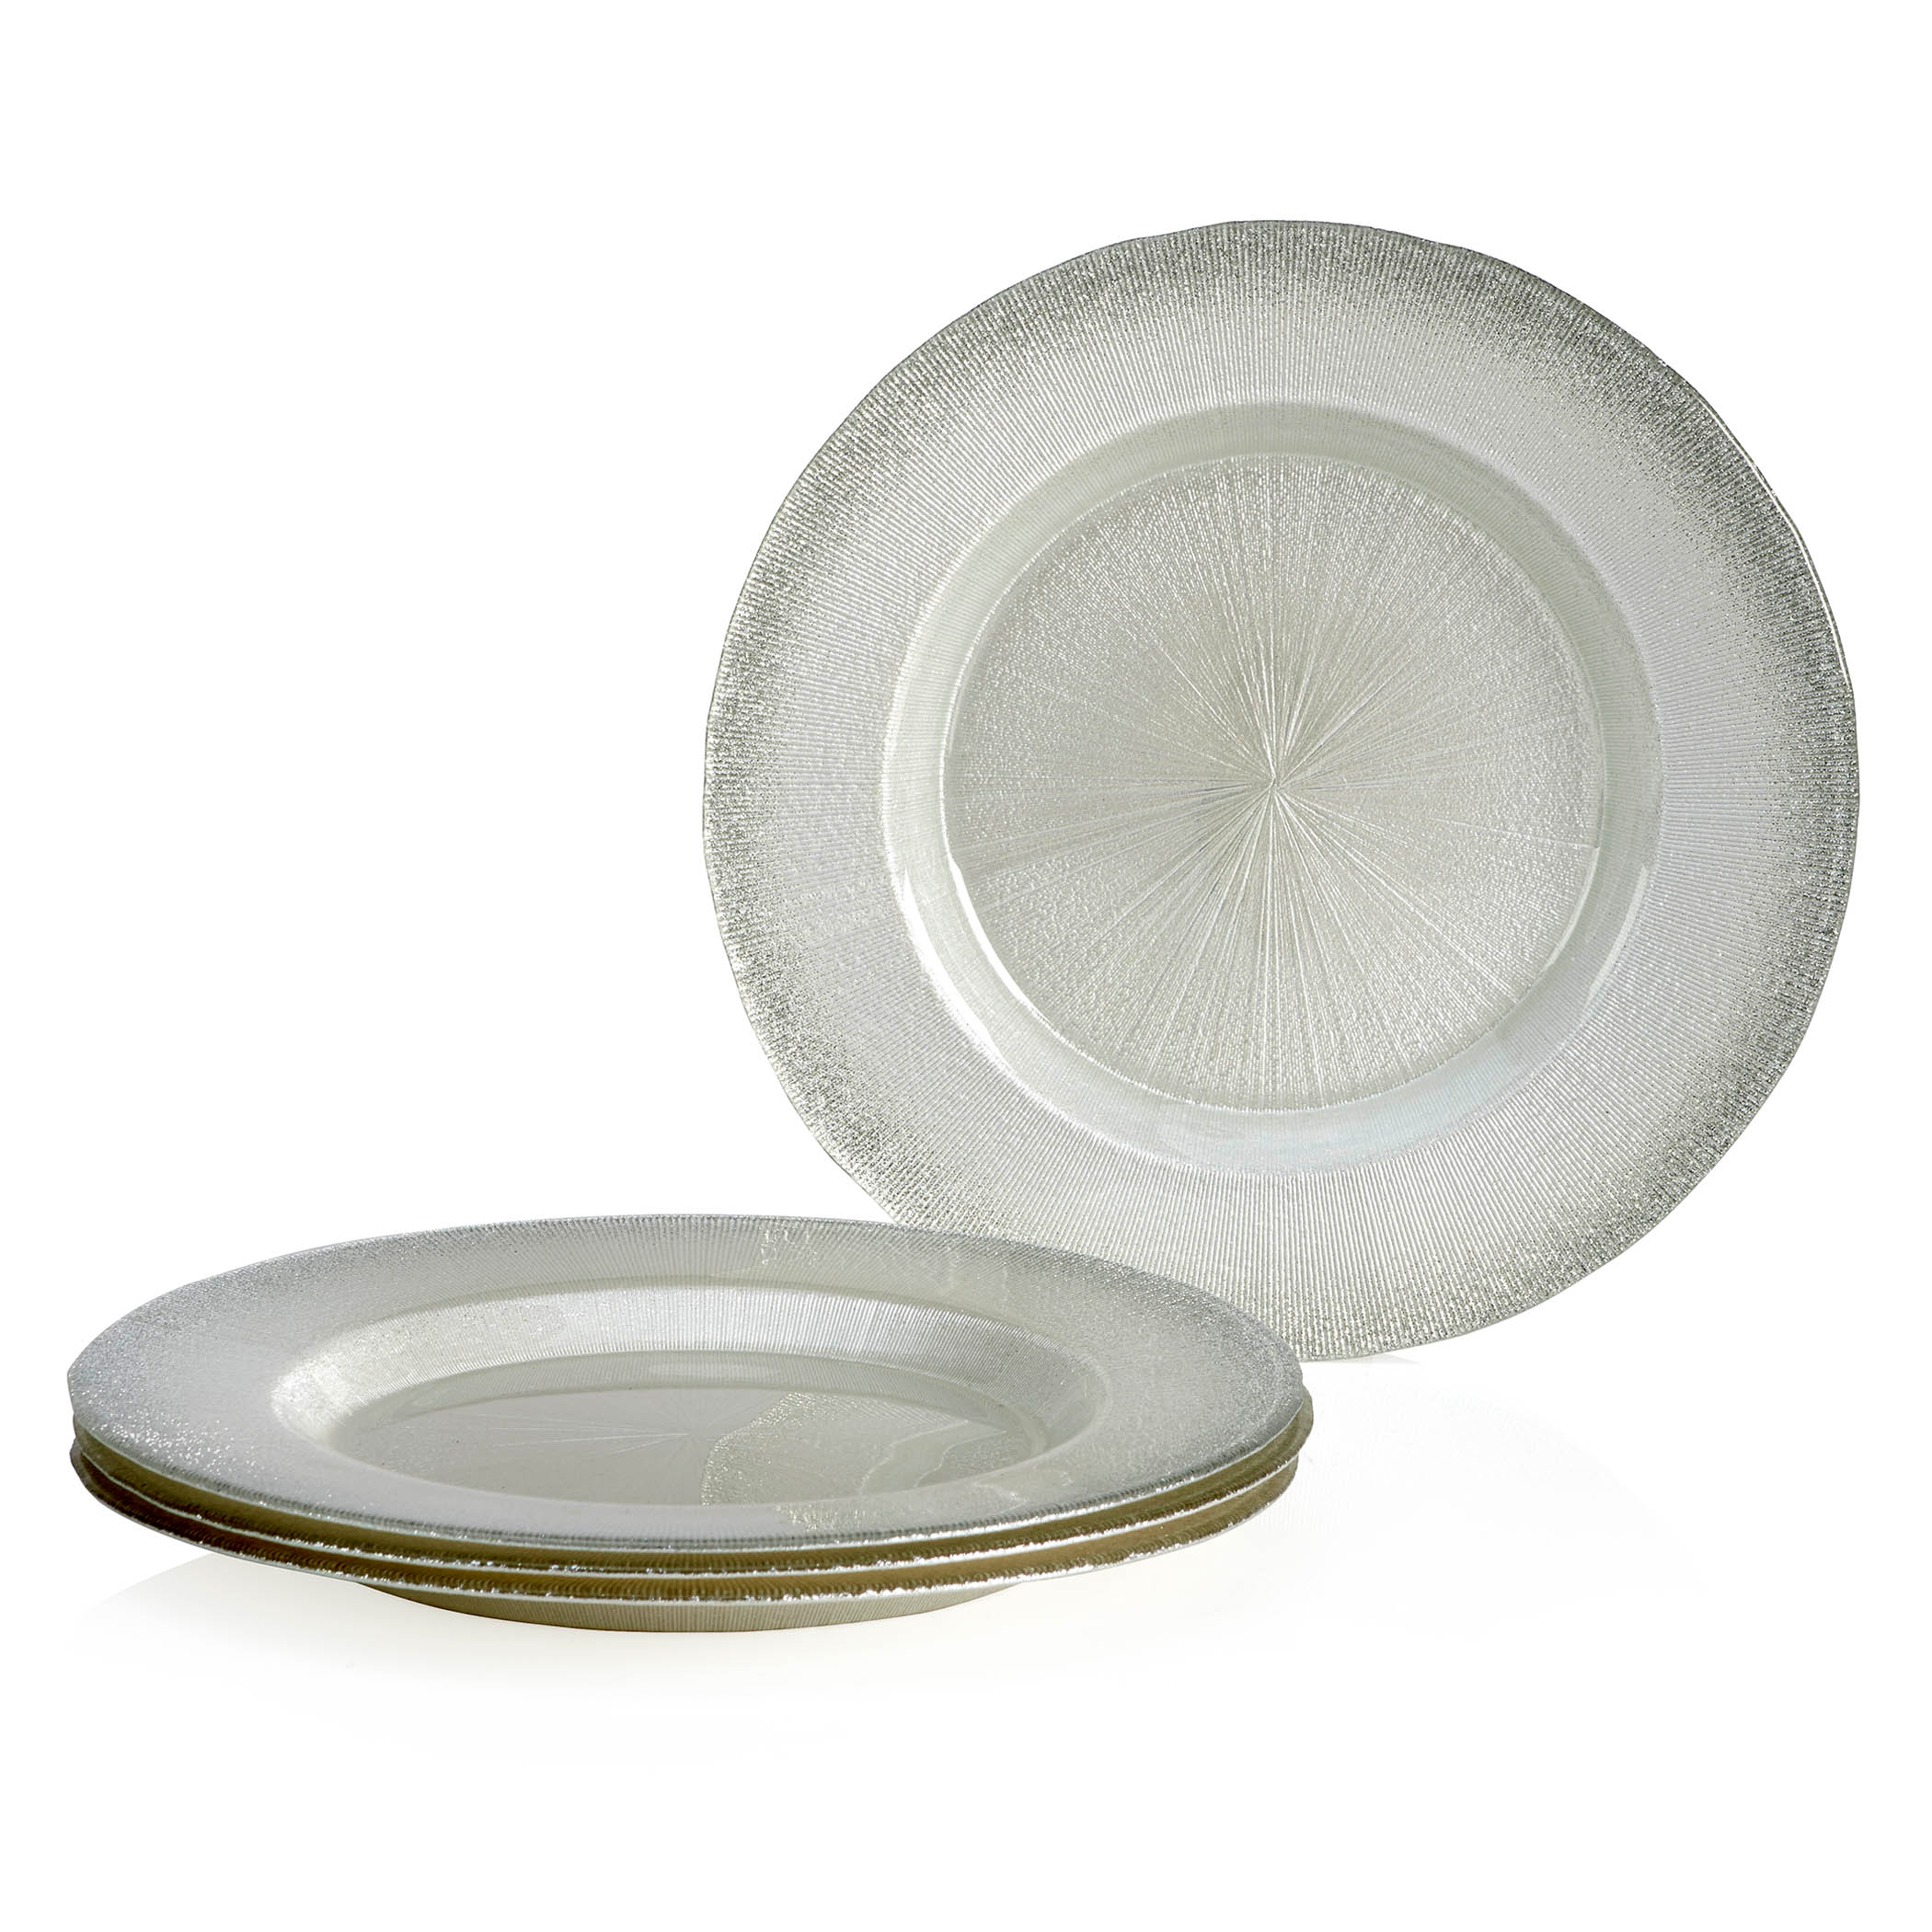 Halo Dinnerware - Sets of 4